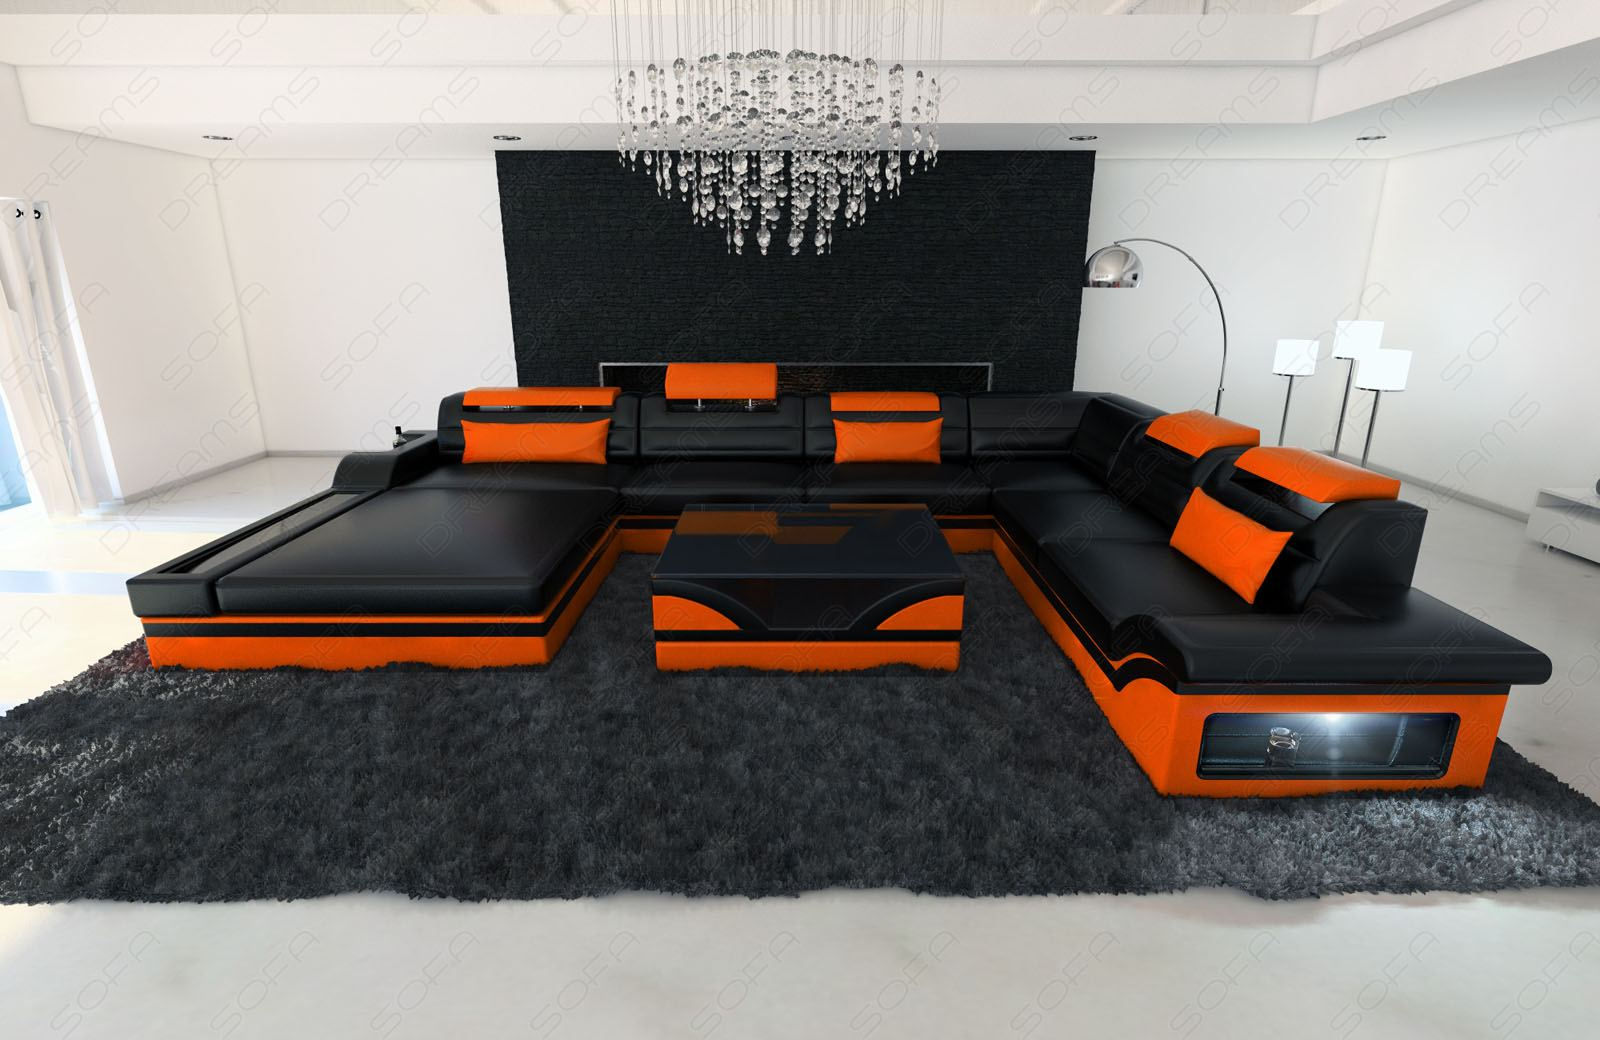 design wohnlandschaft. Black Bedroom Furniture Sets. Home Design Ideas